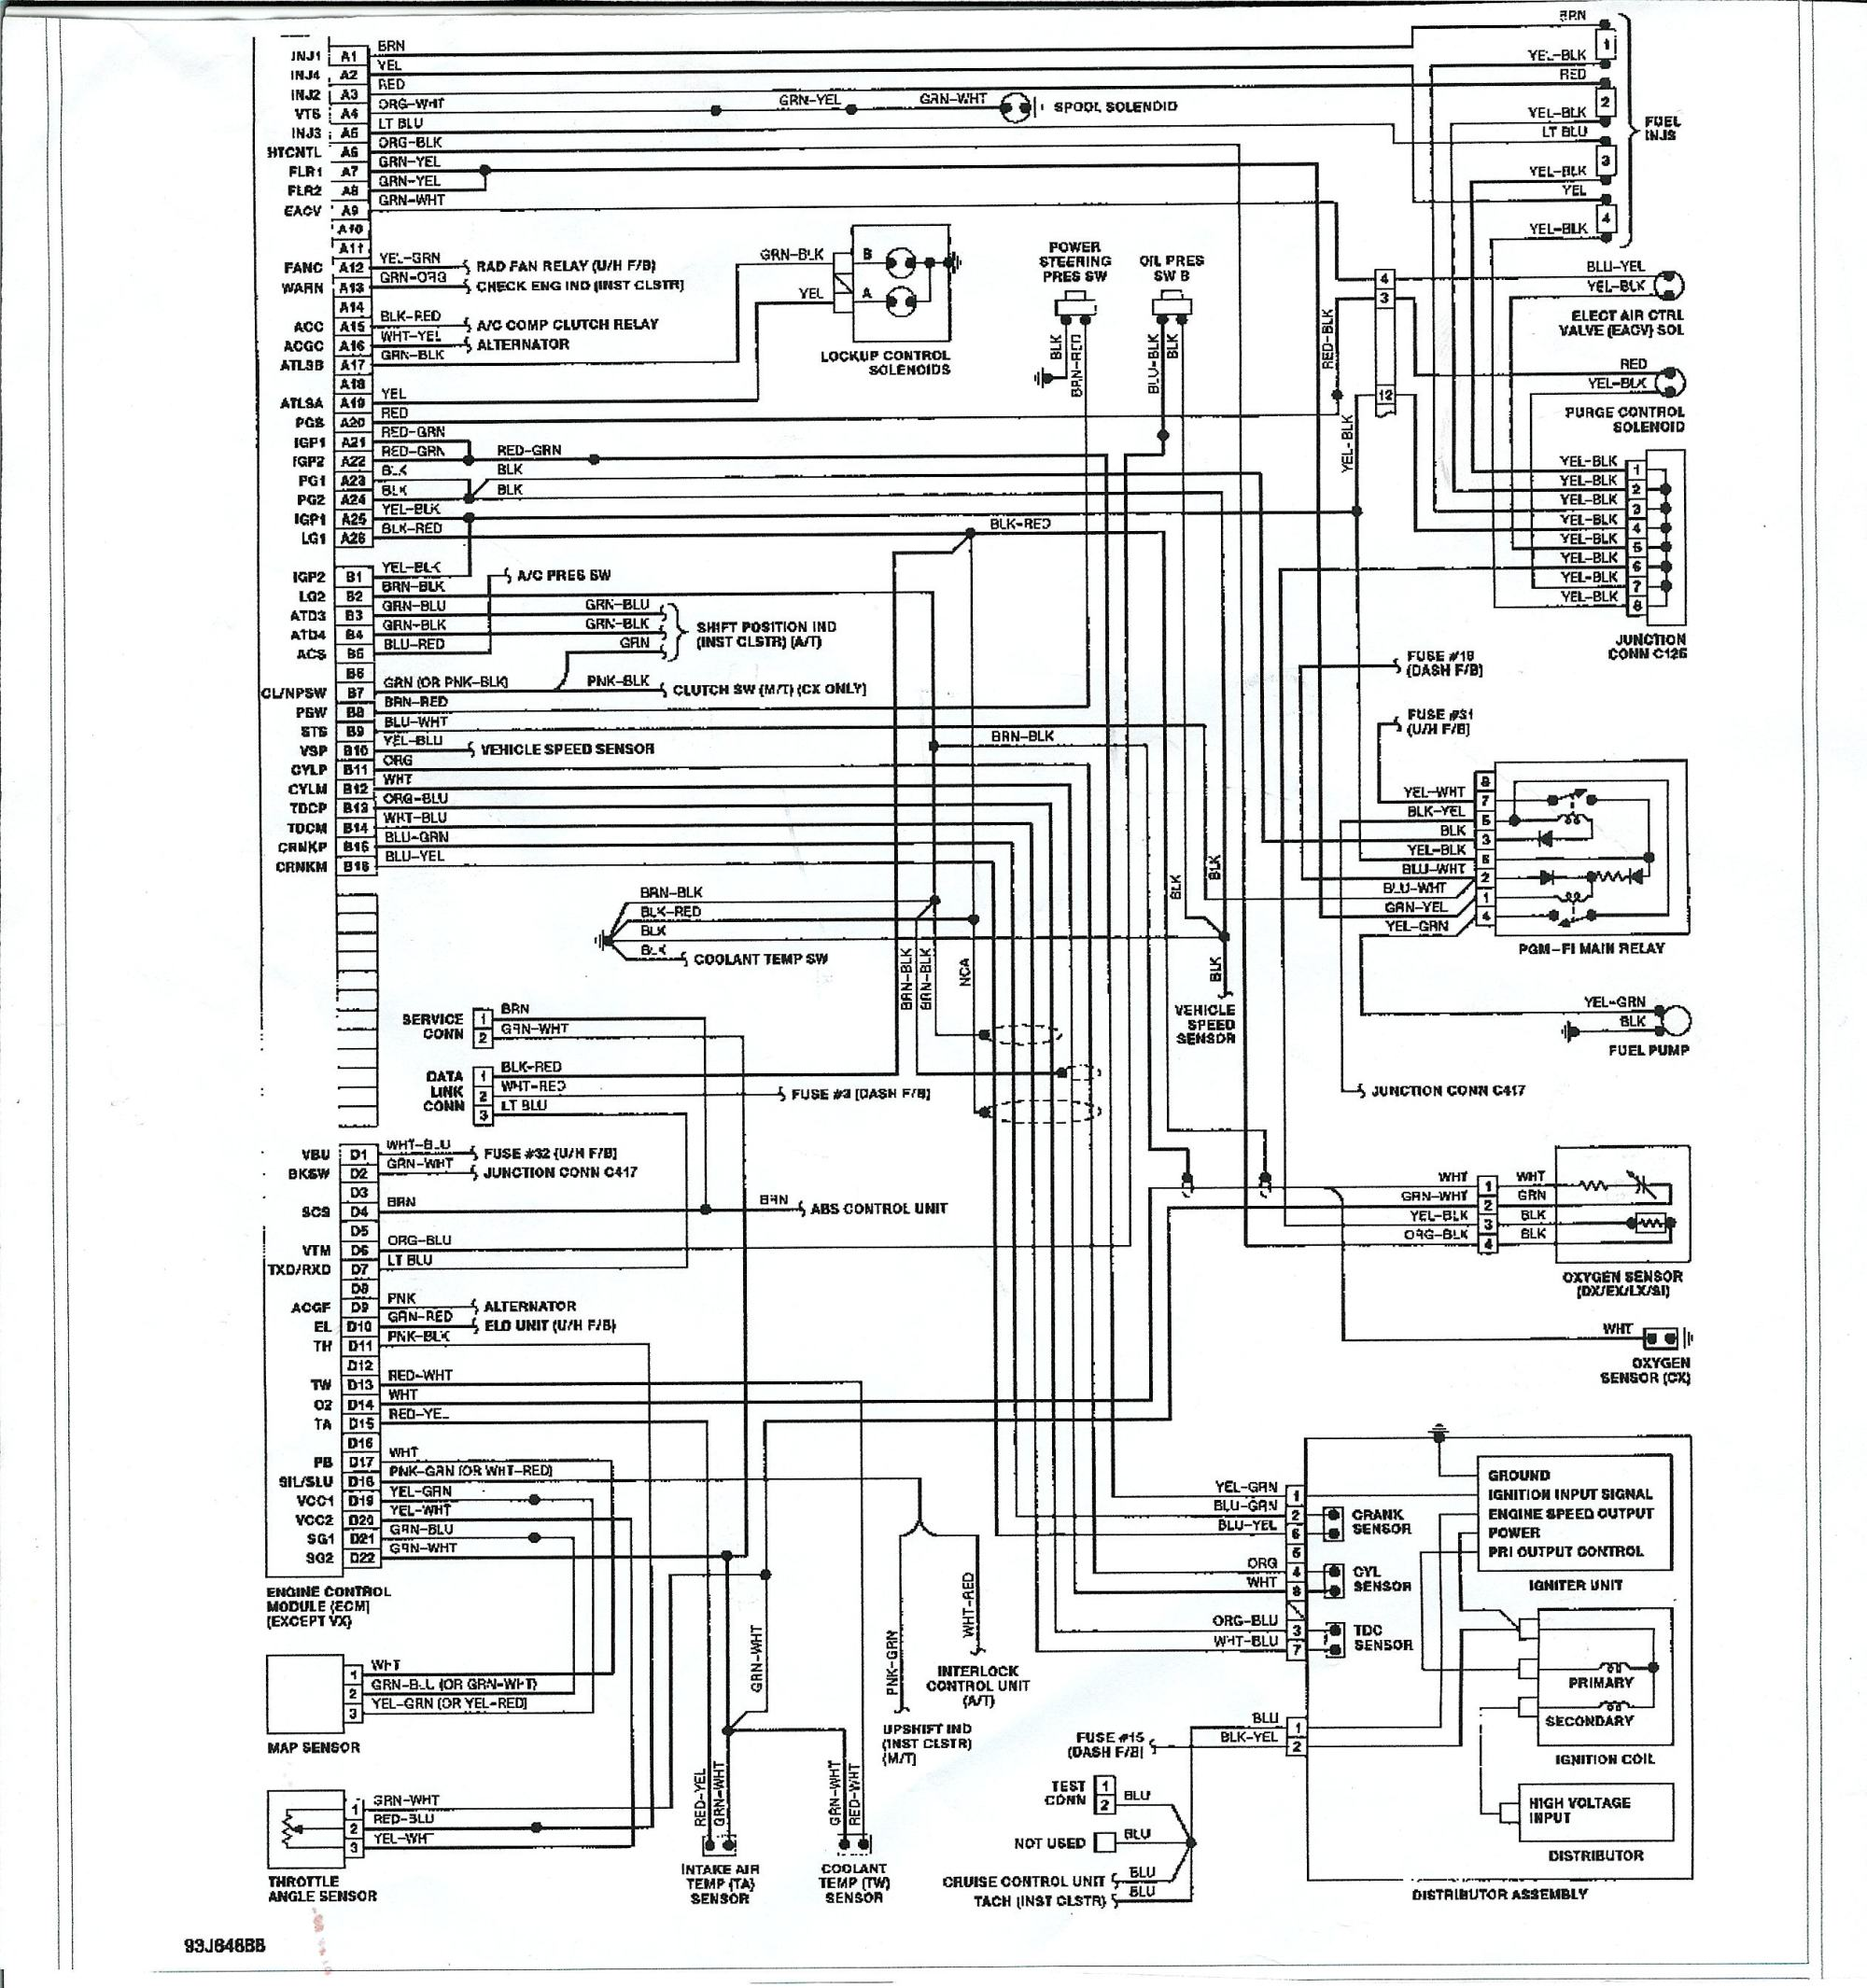 hight resolution of 1990 civic cluster wiring diagram besides 92 95 civic wiring diagram 1990 civic cluster wiring diagram